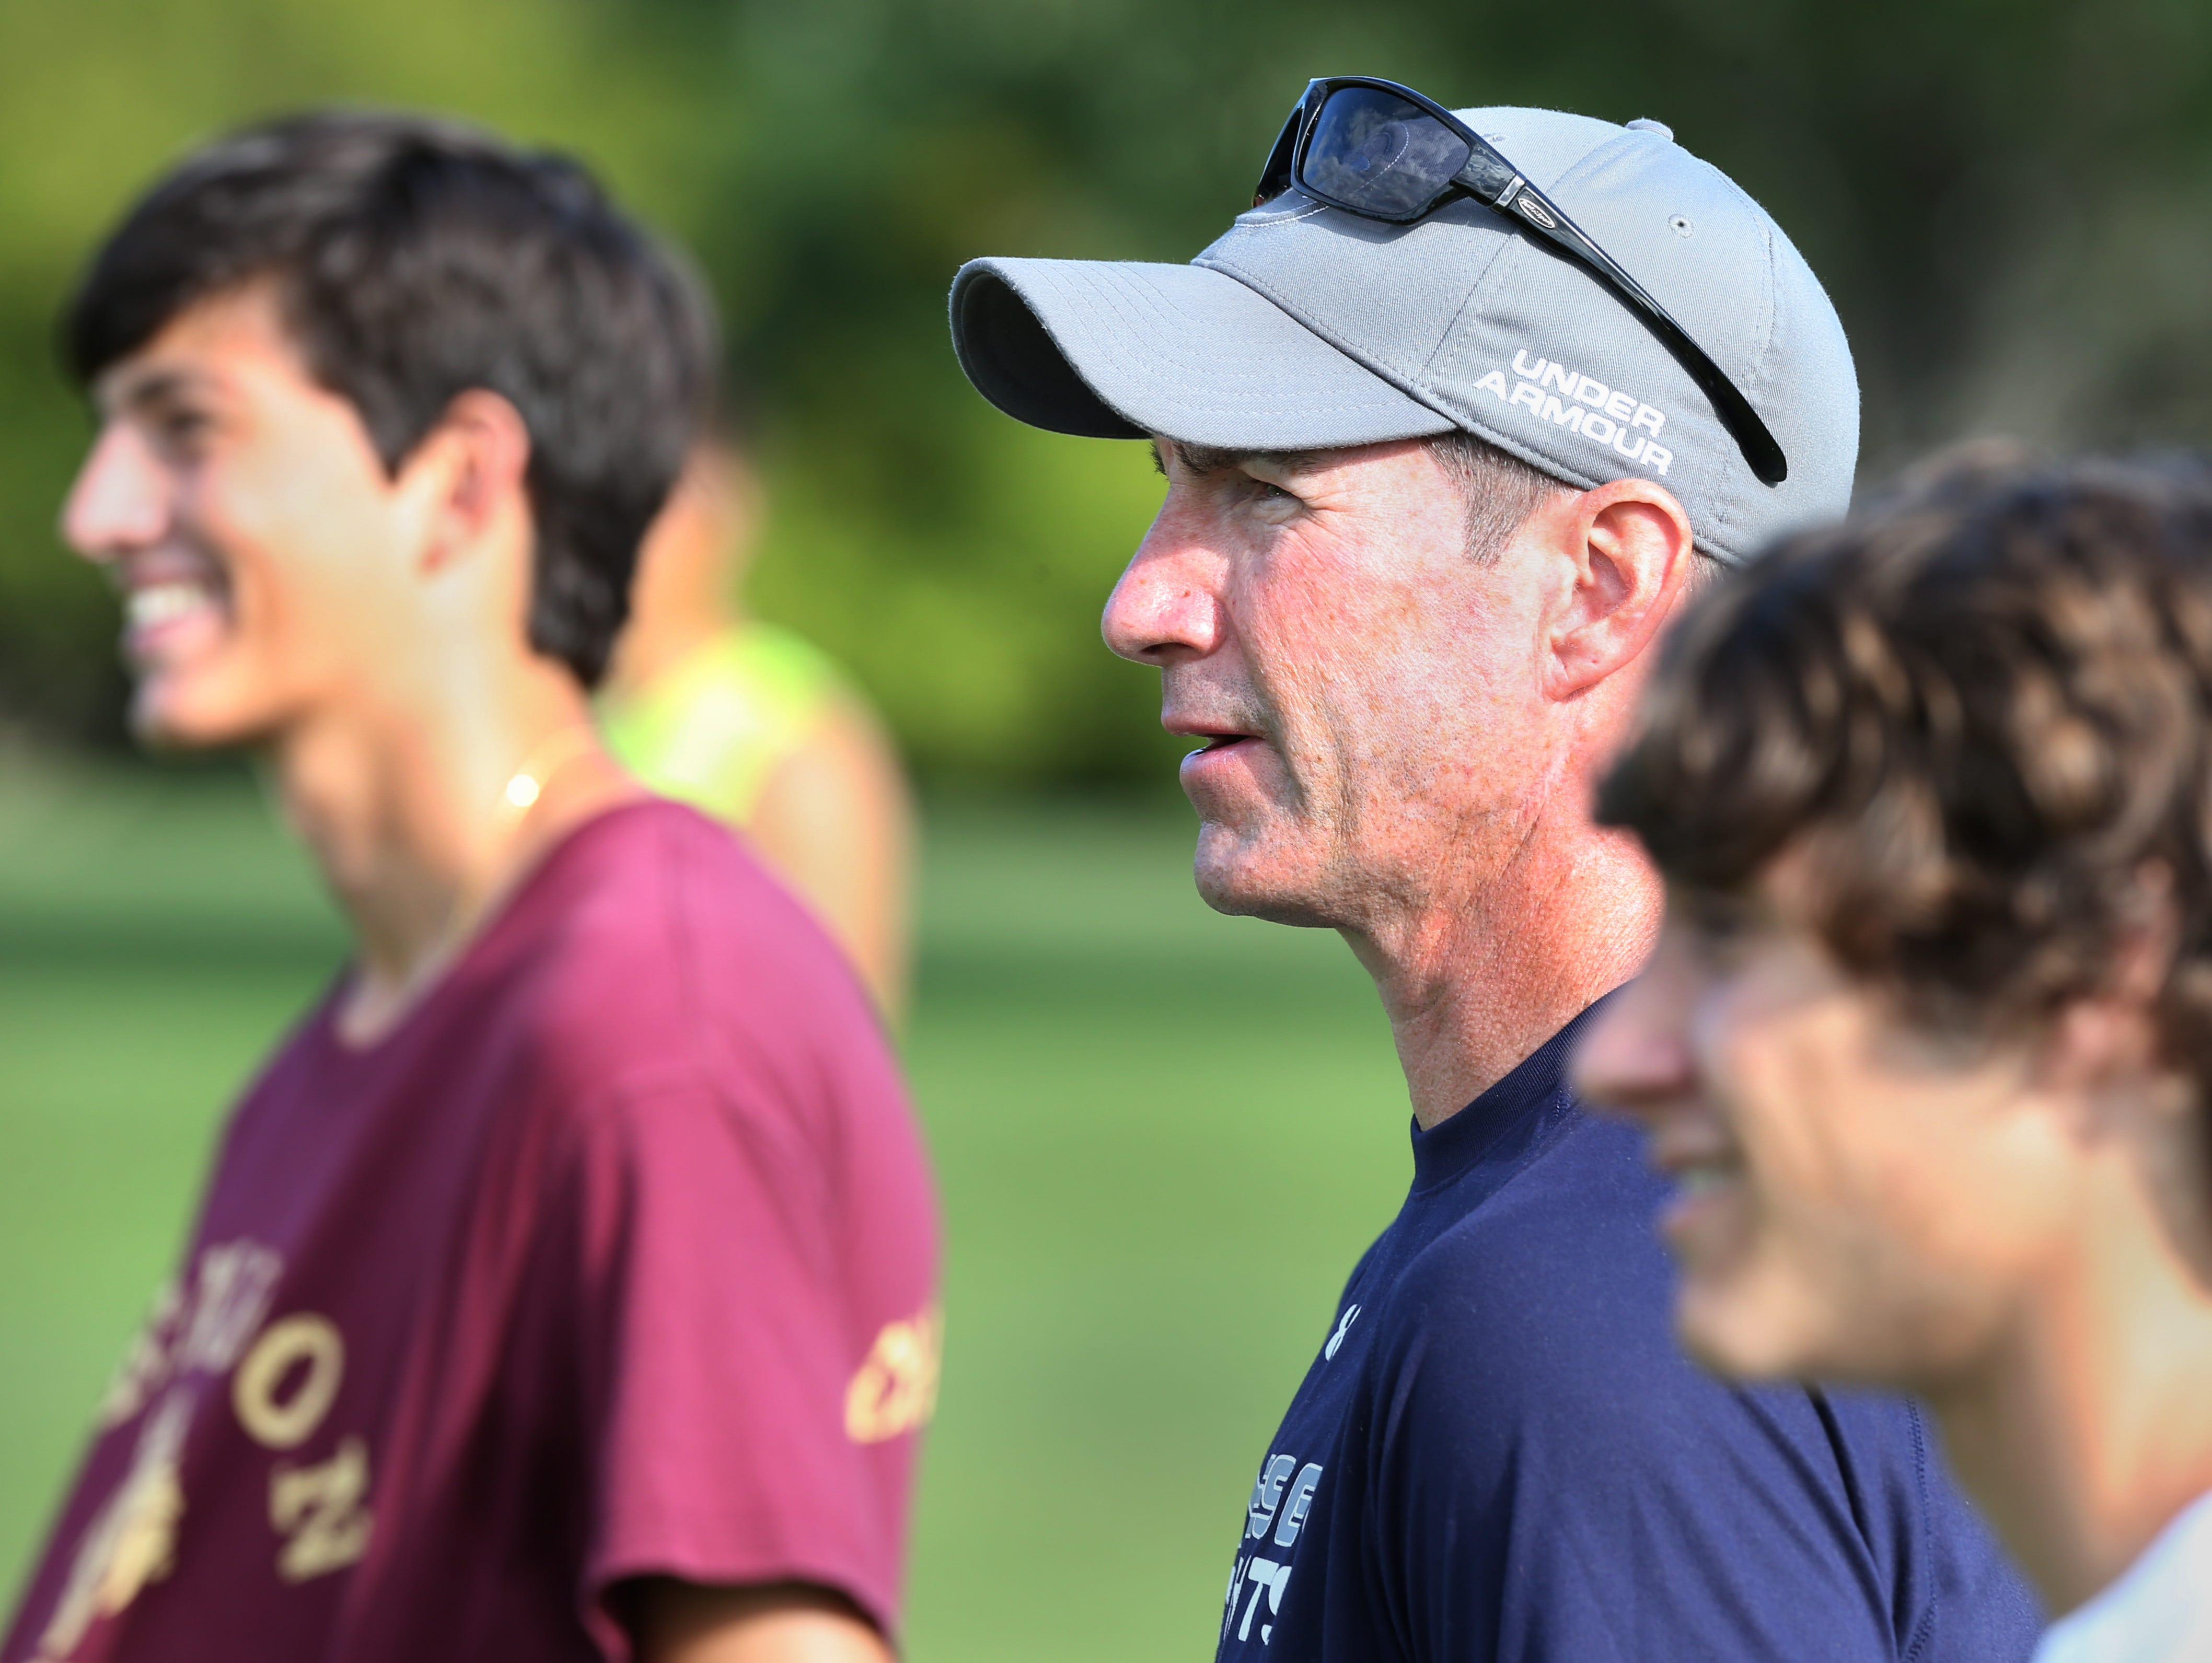 Pittsford Mendon boys varsity soccer coach Mark Hurley always keeps an eye on the action on the field during practice at Hopkins Park in Mendon Tuesday, Sept. 22, 2015.